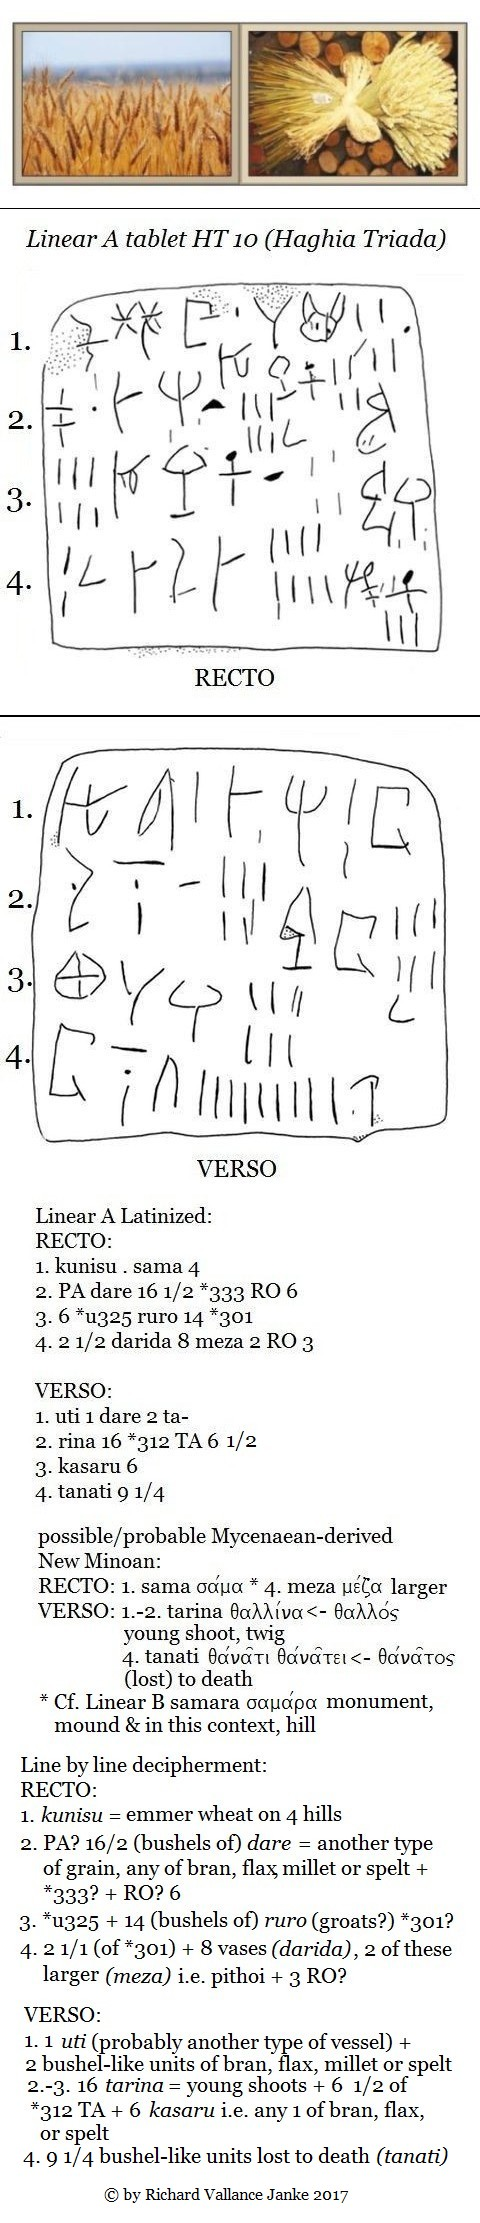 Linear A tablet HT 10 Haghia Triada dealing with several grain crops